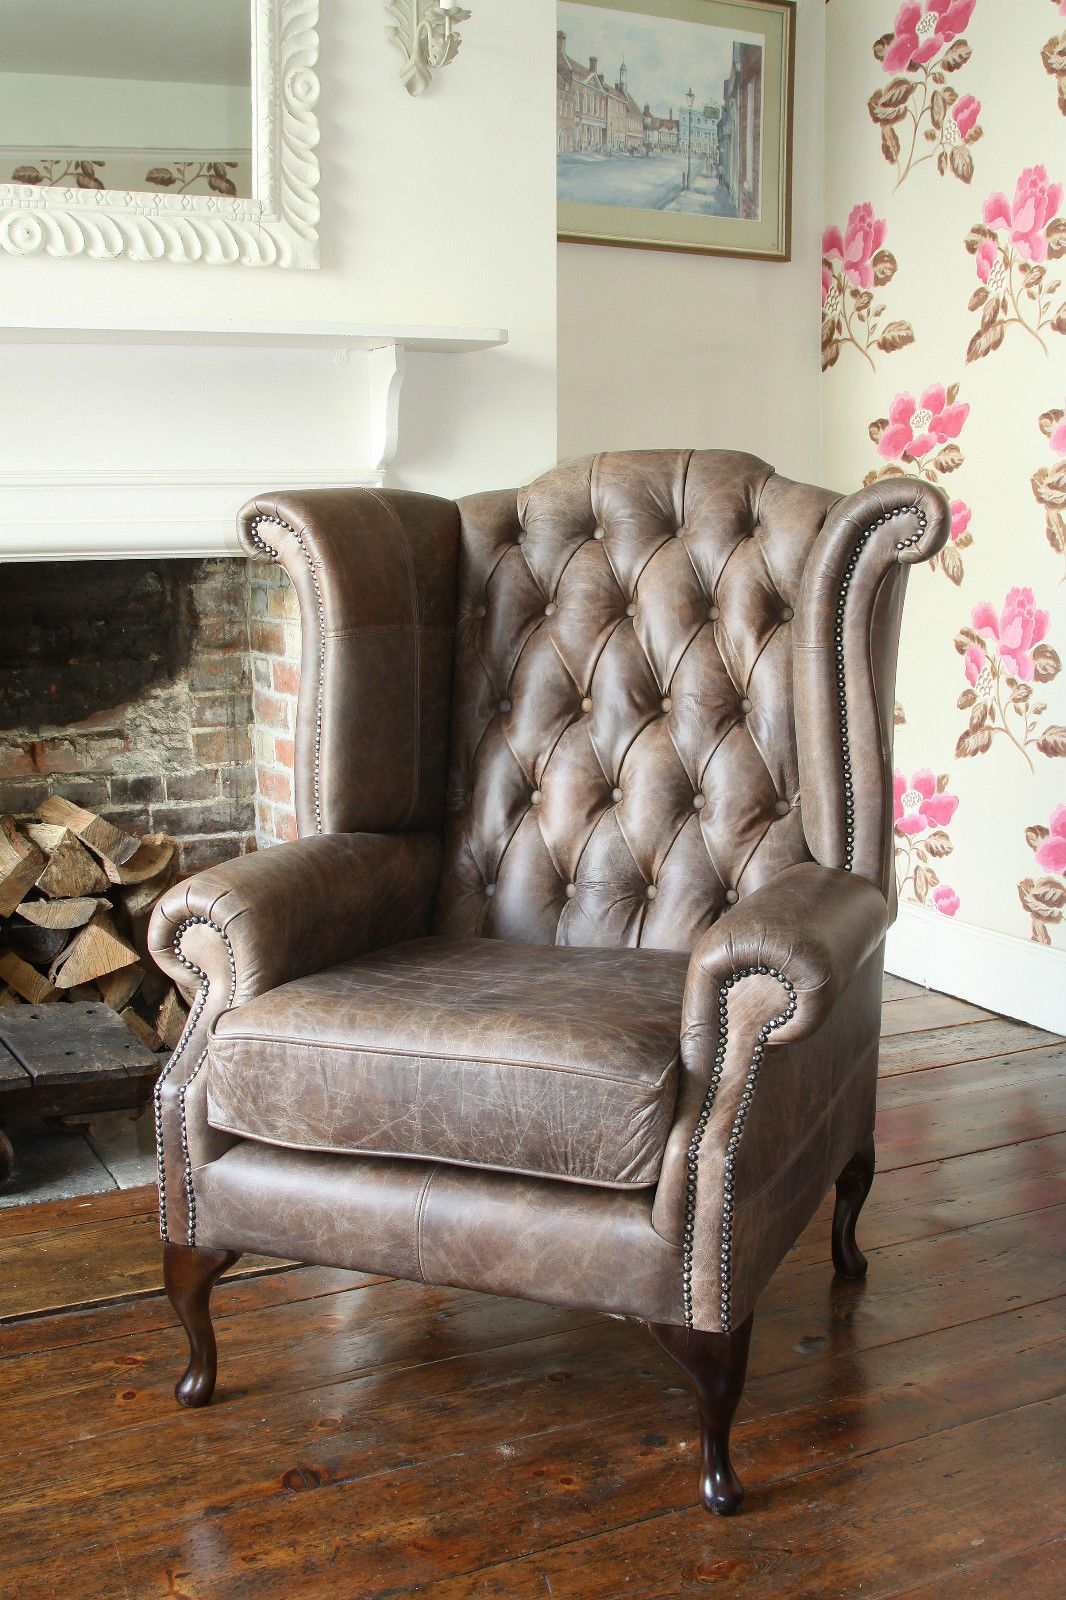 Chesterfield queen anne high back wing chair in vintage